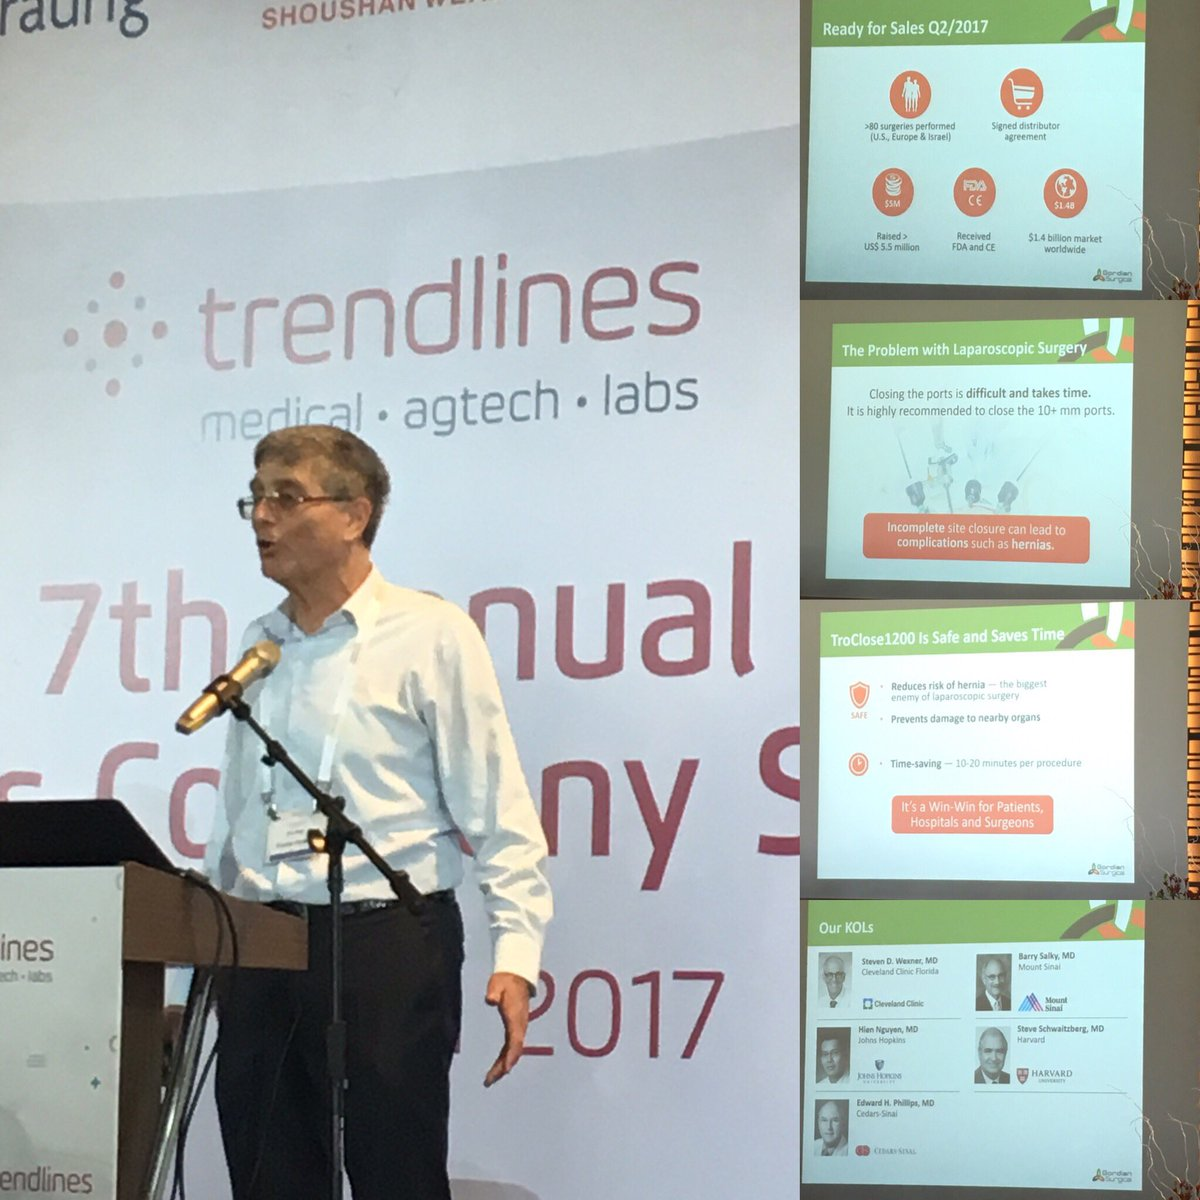 Zvi Peer CEO Gordian Surgical #laparoscopy autoclosing trochar CE marked FDA approved $5.5m raised #medtech #medicaldevice @TrendlinesGroup<br>http://pic.twitter.com/9fiCBHCdyW